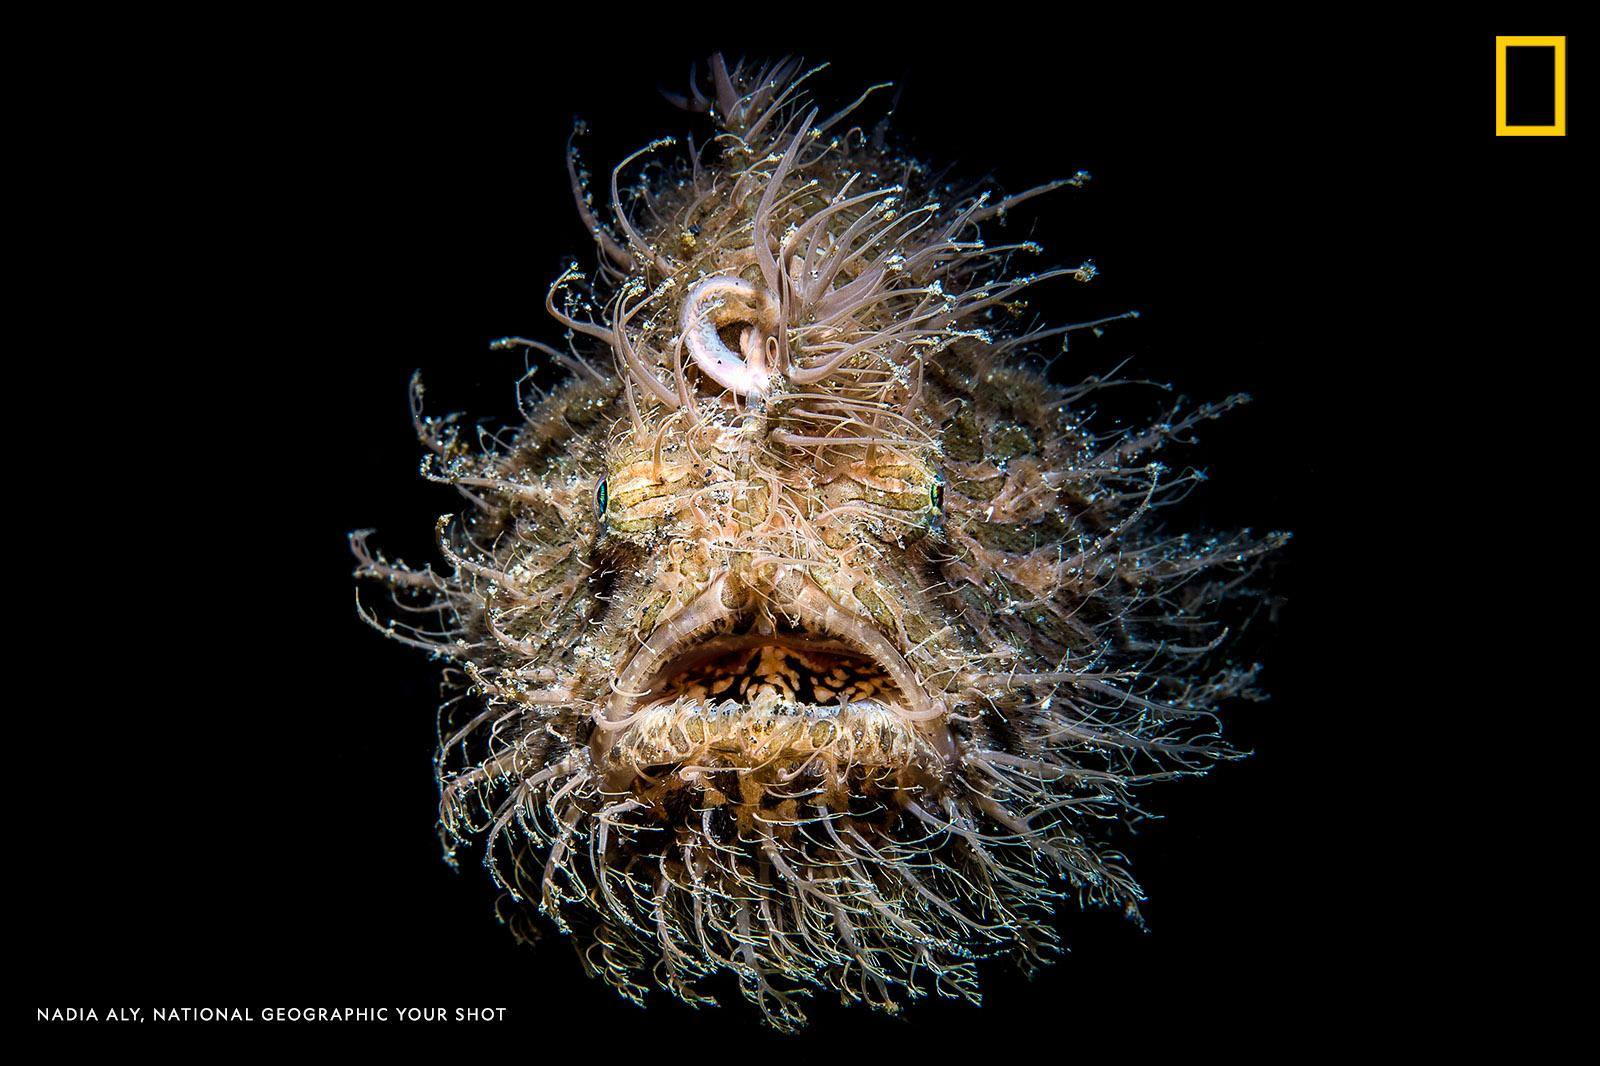 """The """"hairs"""" on a hairy frogfish are actually skin appendages or spinules, writes Your Shot photographer Nadia Aly, who captured this striking underwater portrait. https://on.natgeo.com/2V2fkNk"""